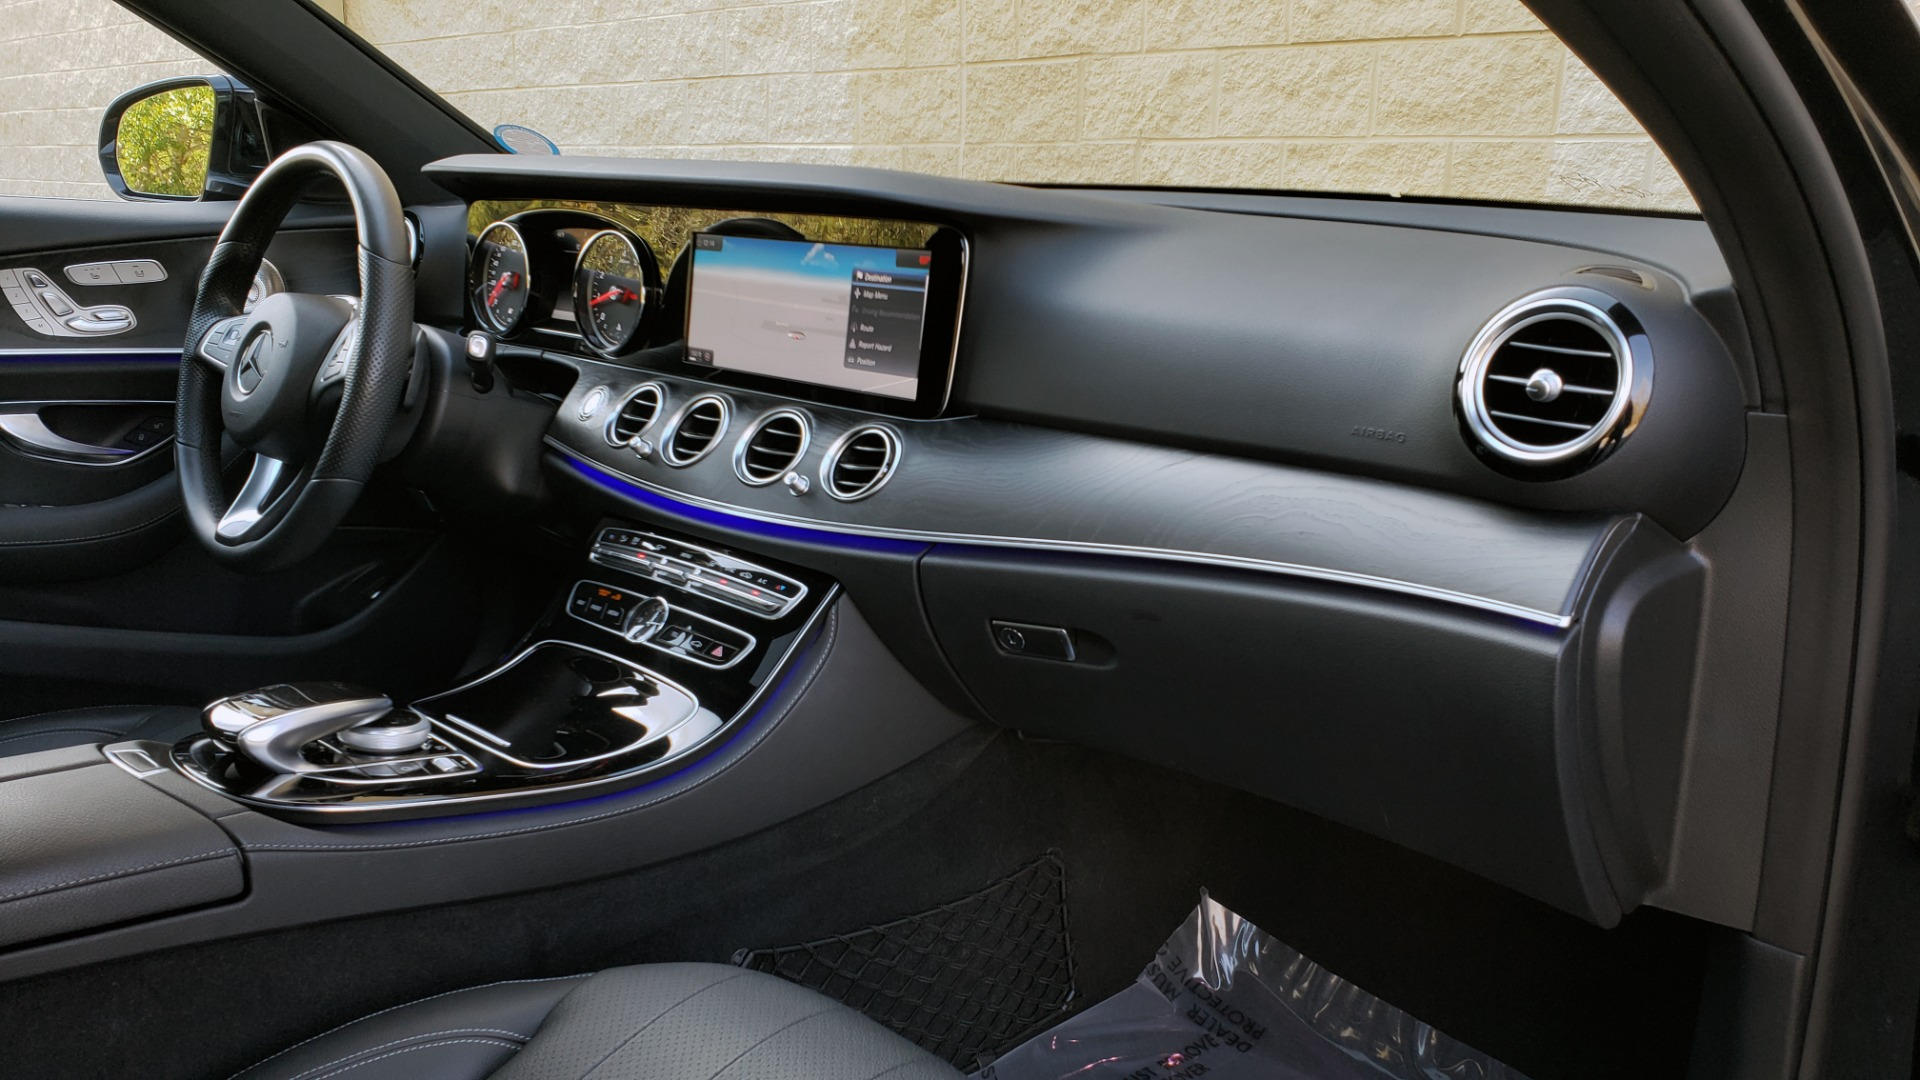 Used 2017 Mercedes-Benz E-CLASS E 300 PREMIUM / NAV / SUNROOF / BURMESTER / HTD STS / REARVIEW for sale $29,995 at Formula Imports in Charlotte NC 28227 69